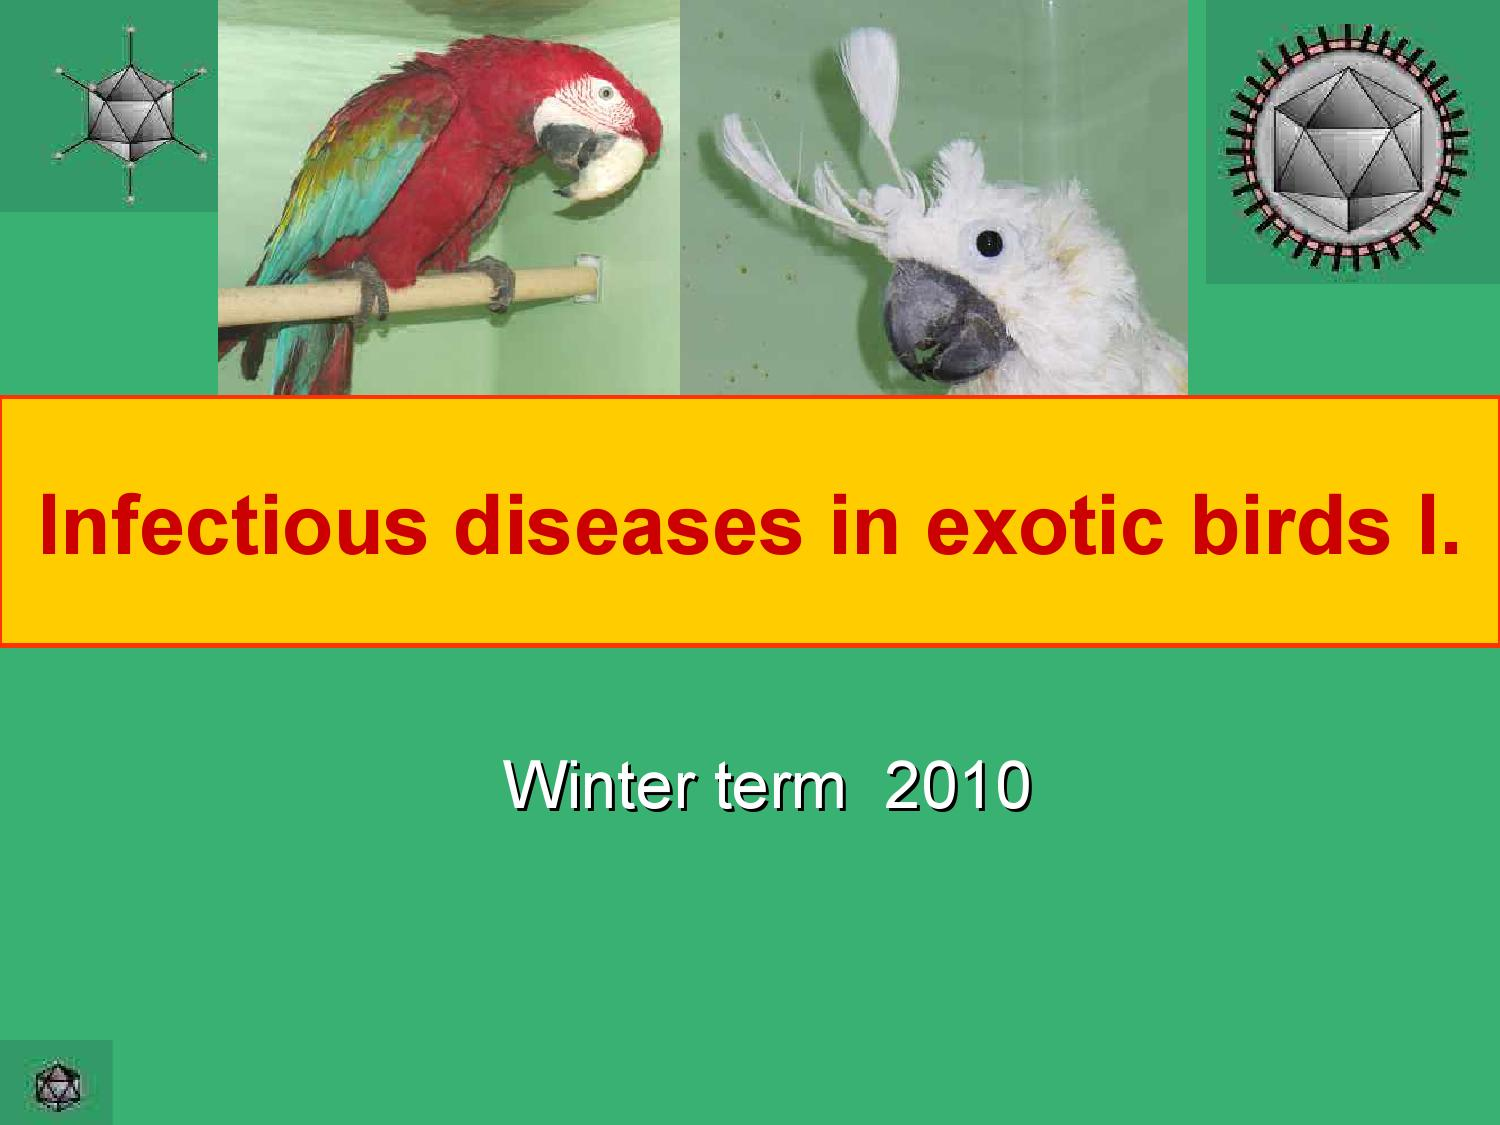 Infectious diseases in exotic birds i by Abohemeed Aly - issuu